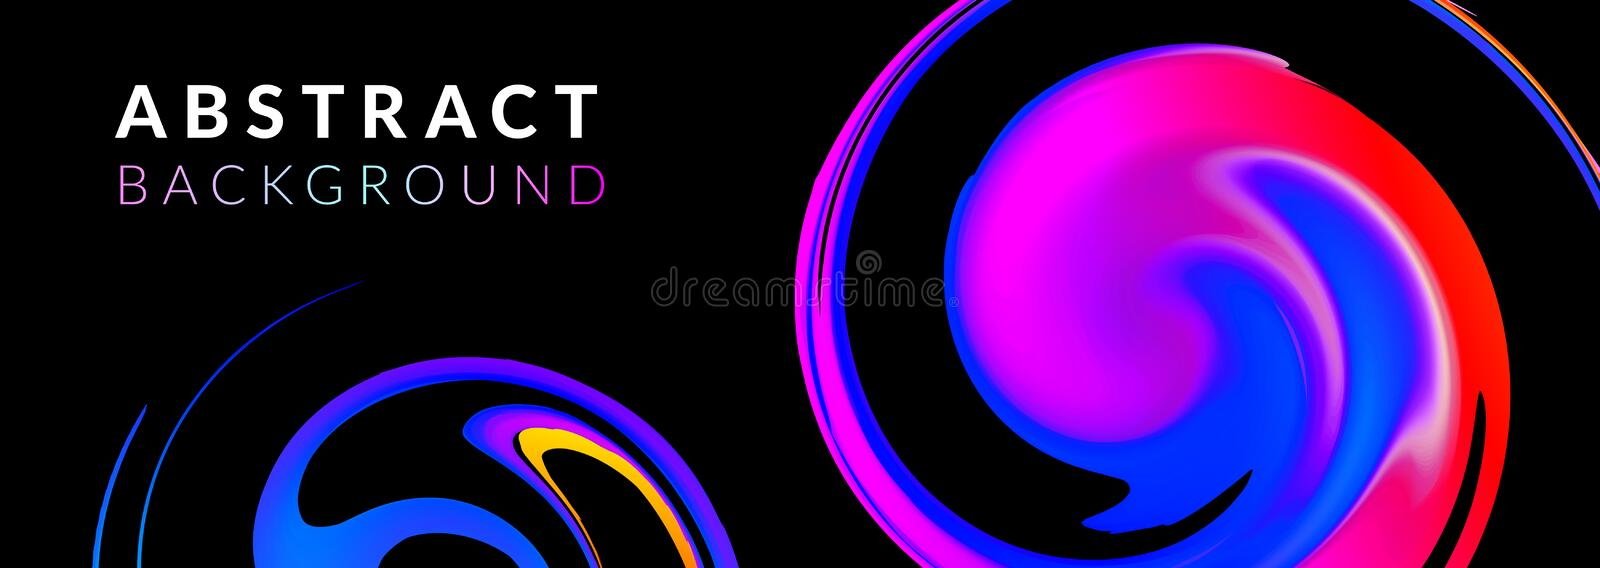 Fluid or liquid dynamic color abstract vector background. Trendy colourful flow design template. Spiral shape. Motion. Graphic and gradient. Horizontal banner vector illustration